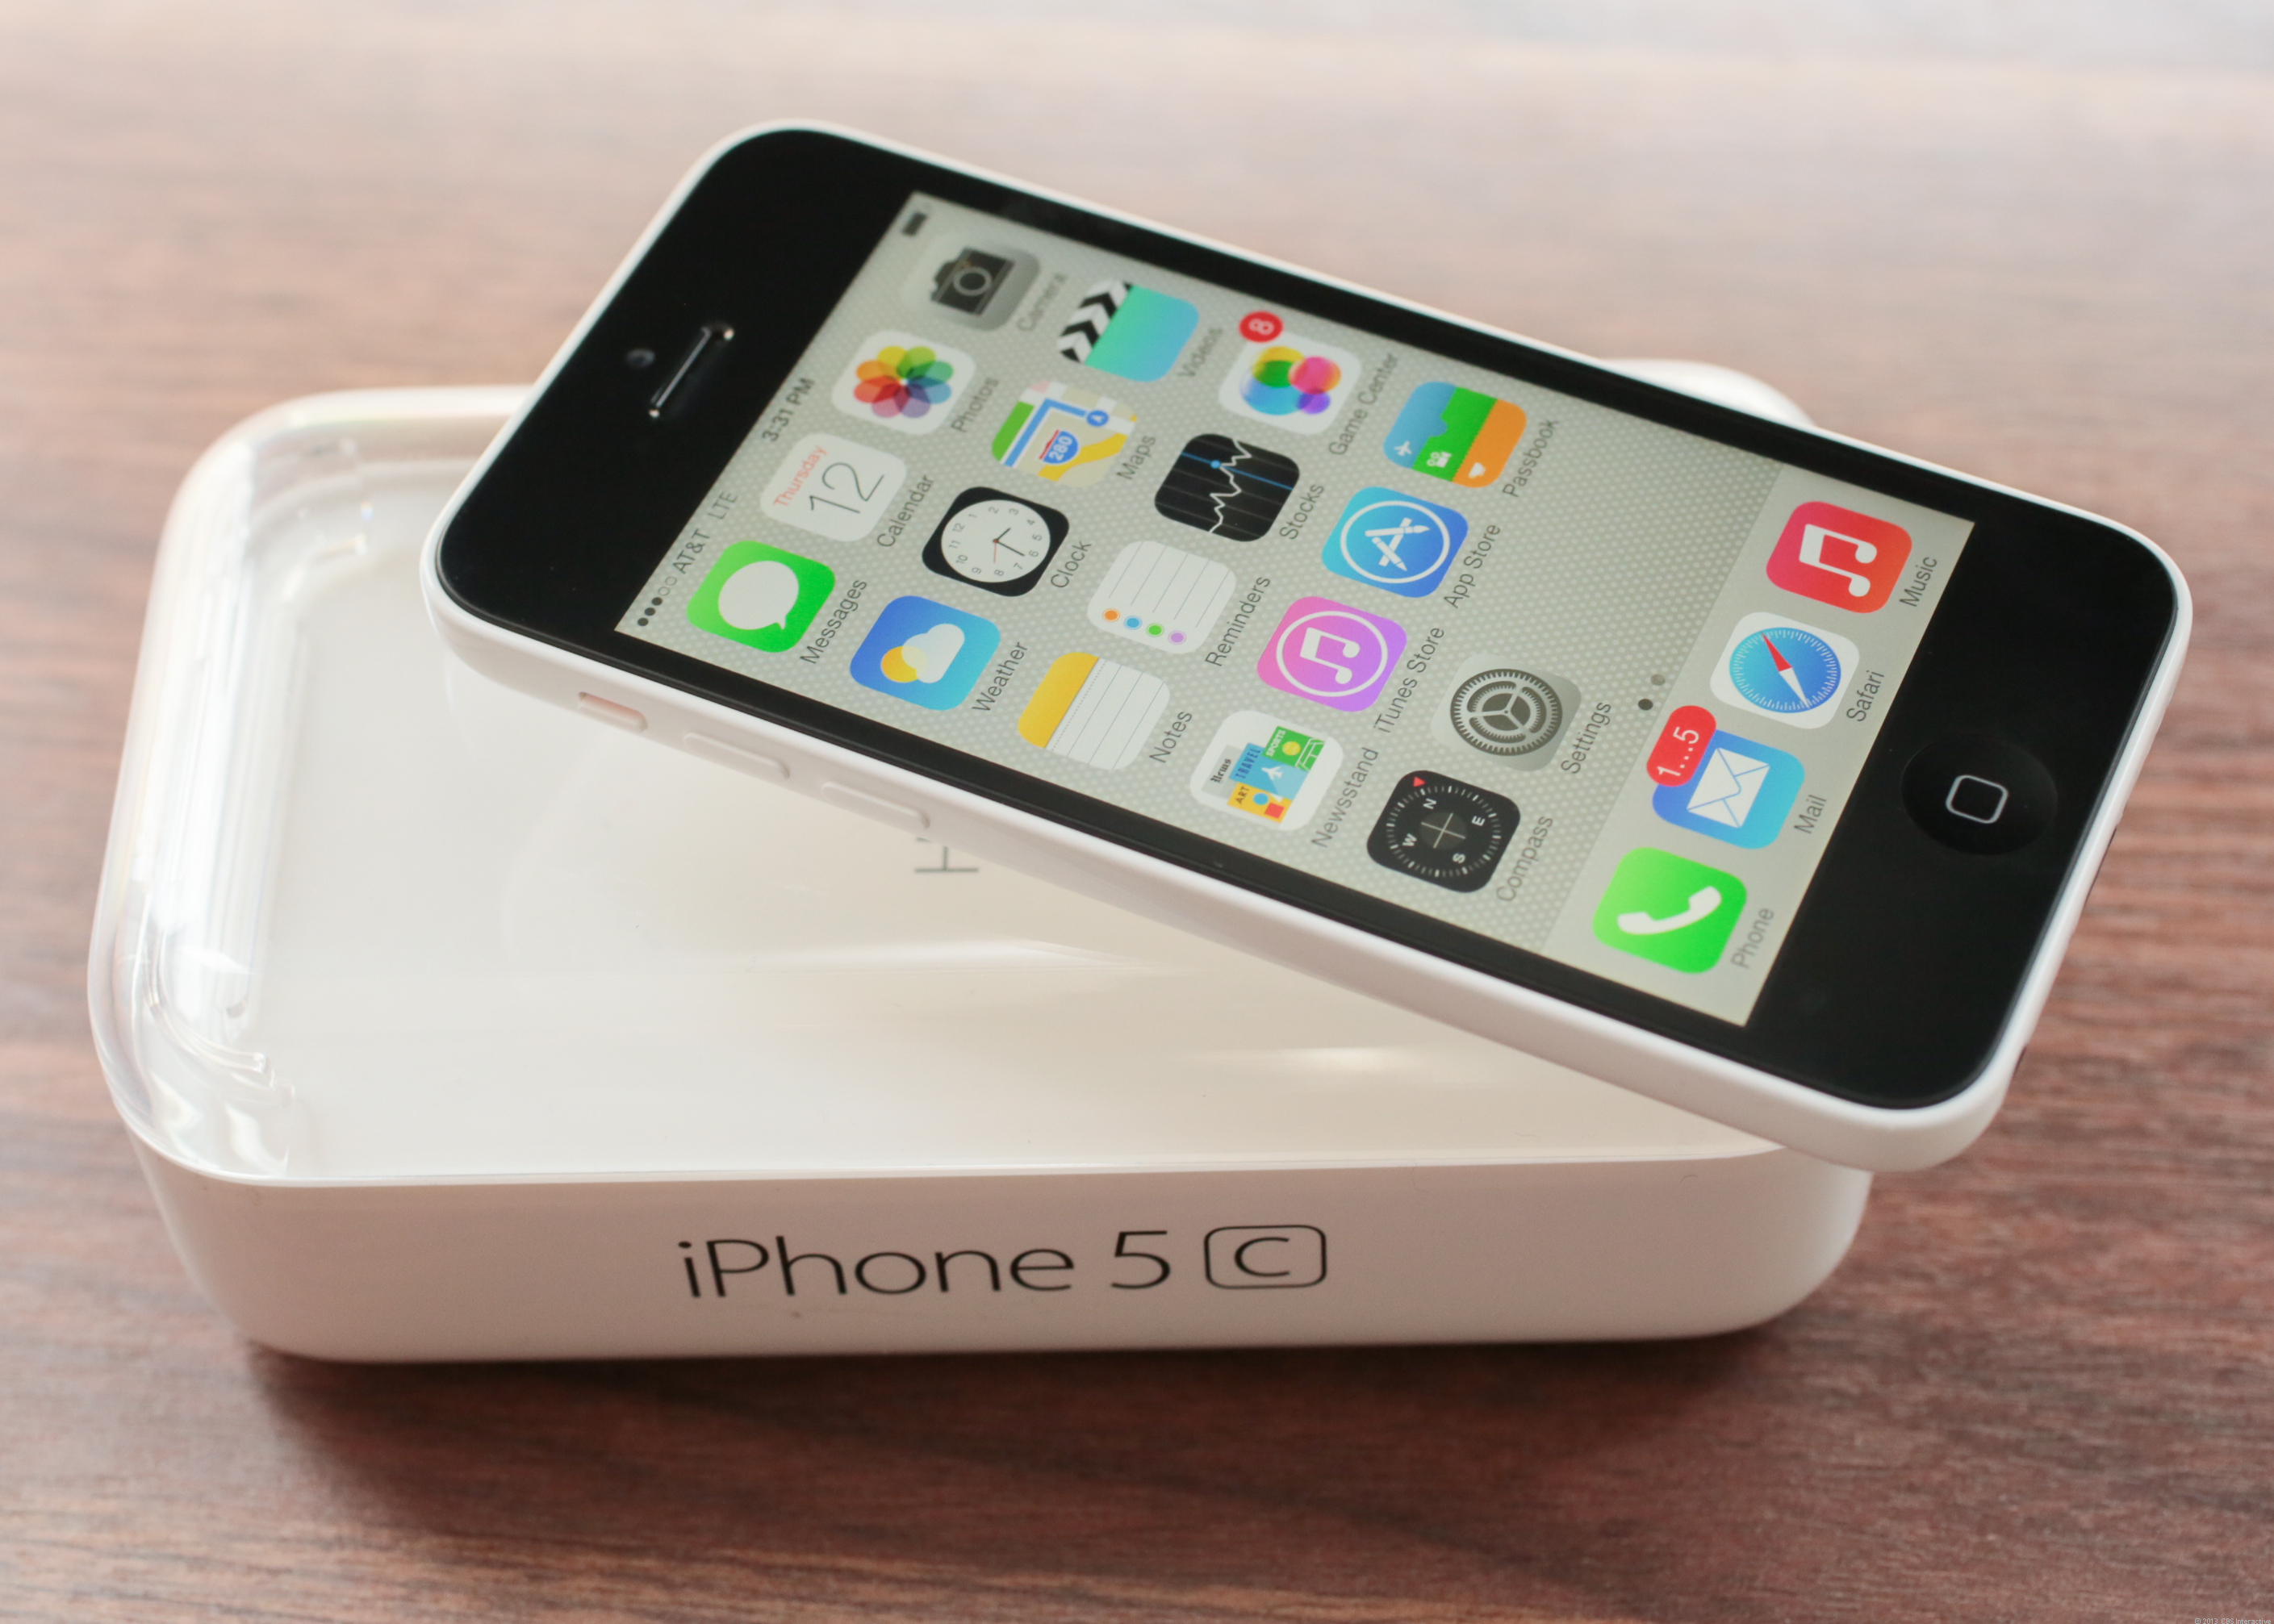 iPhone 5C is priced to sell